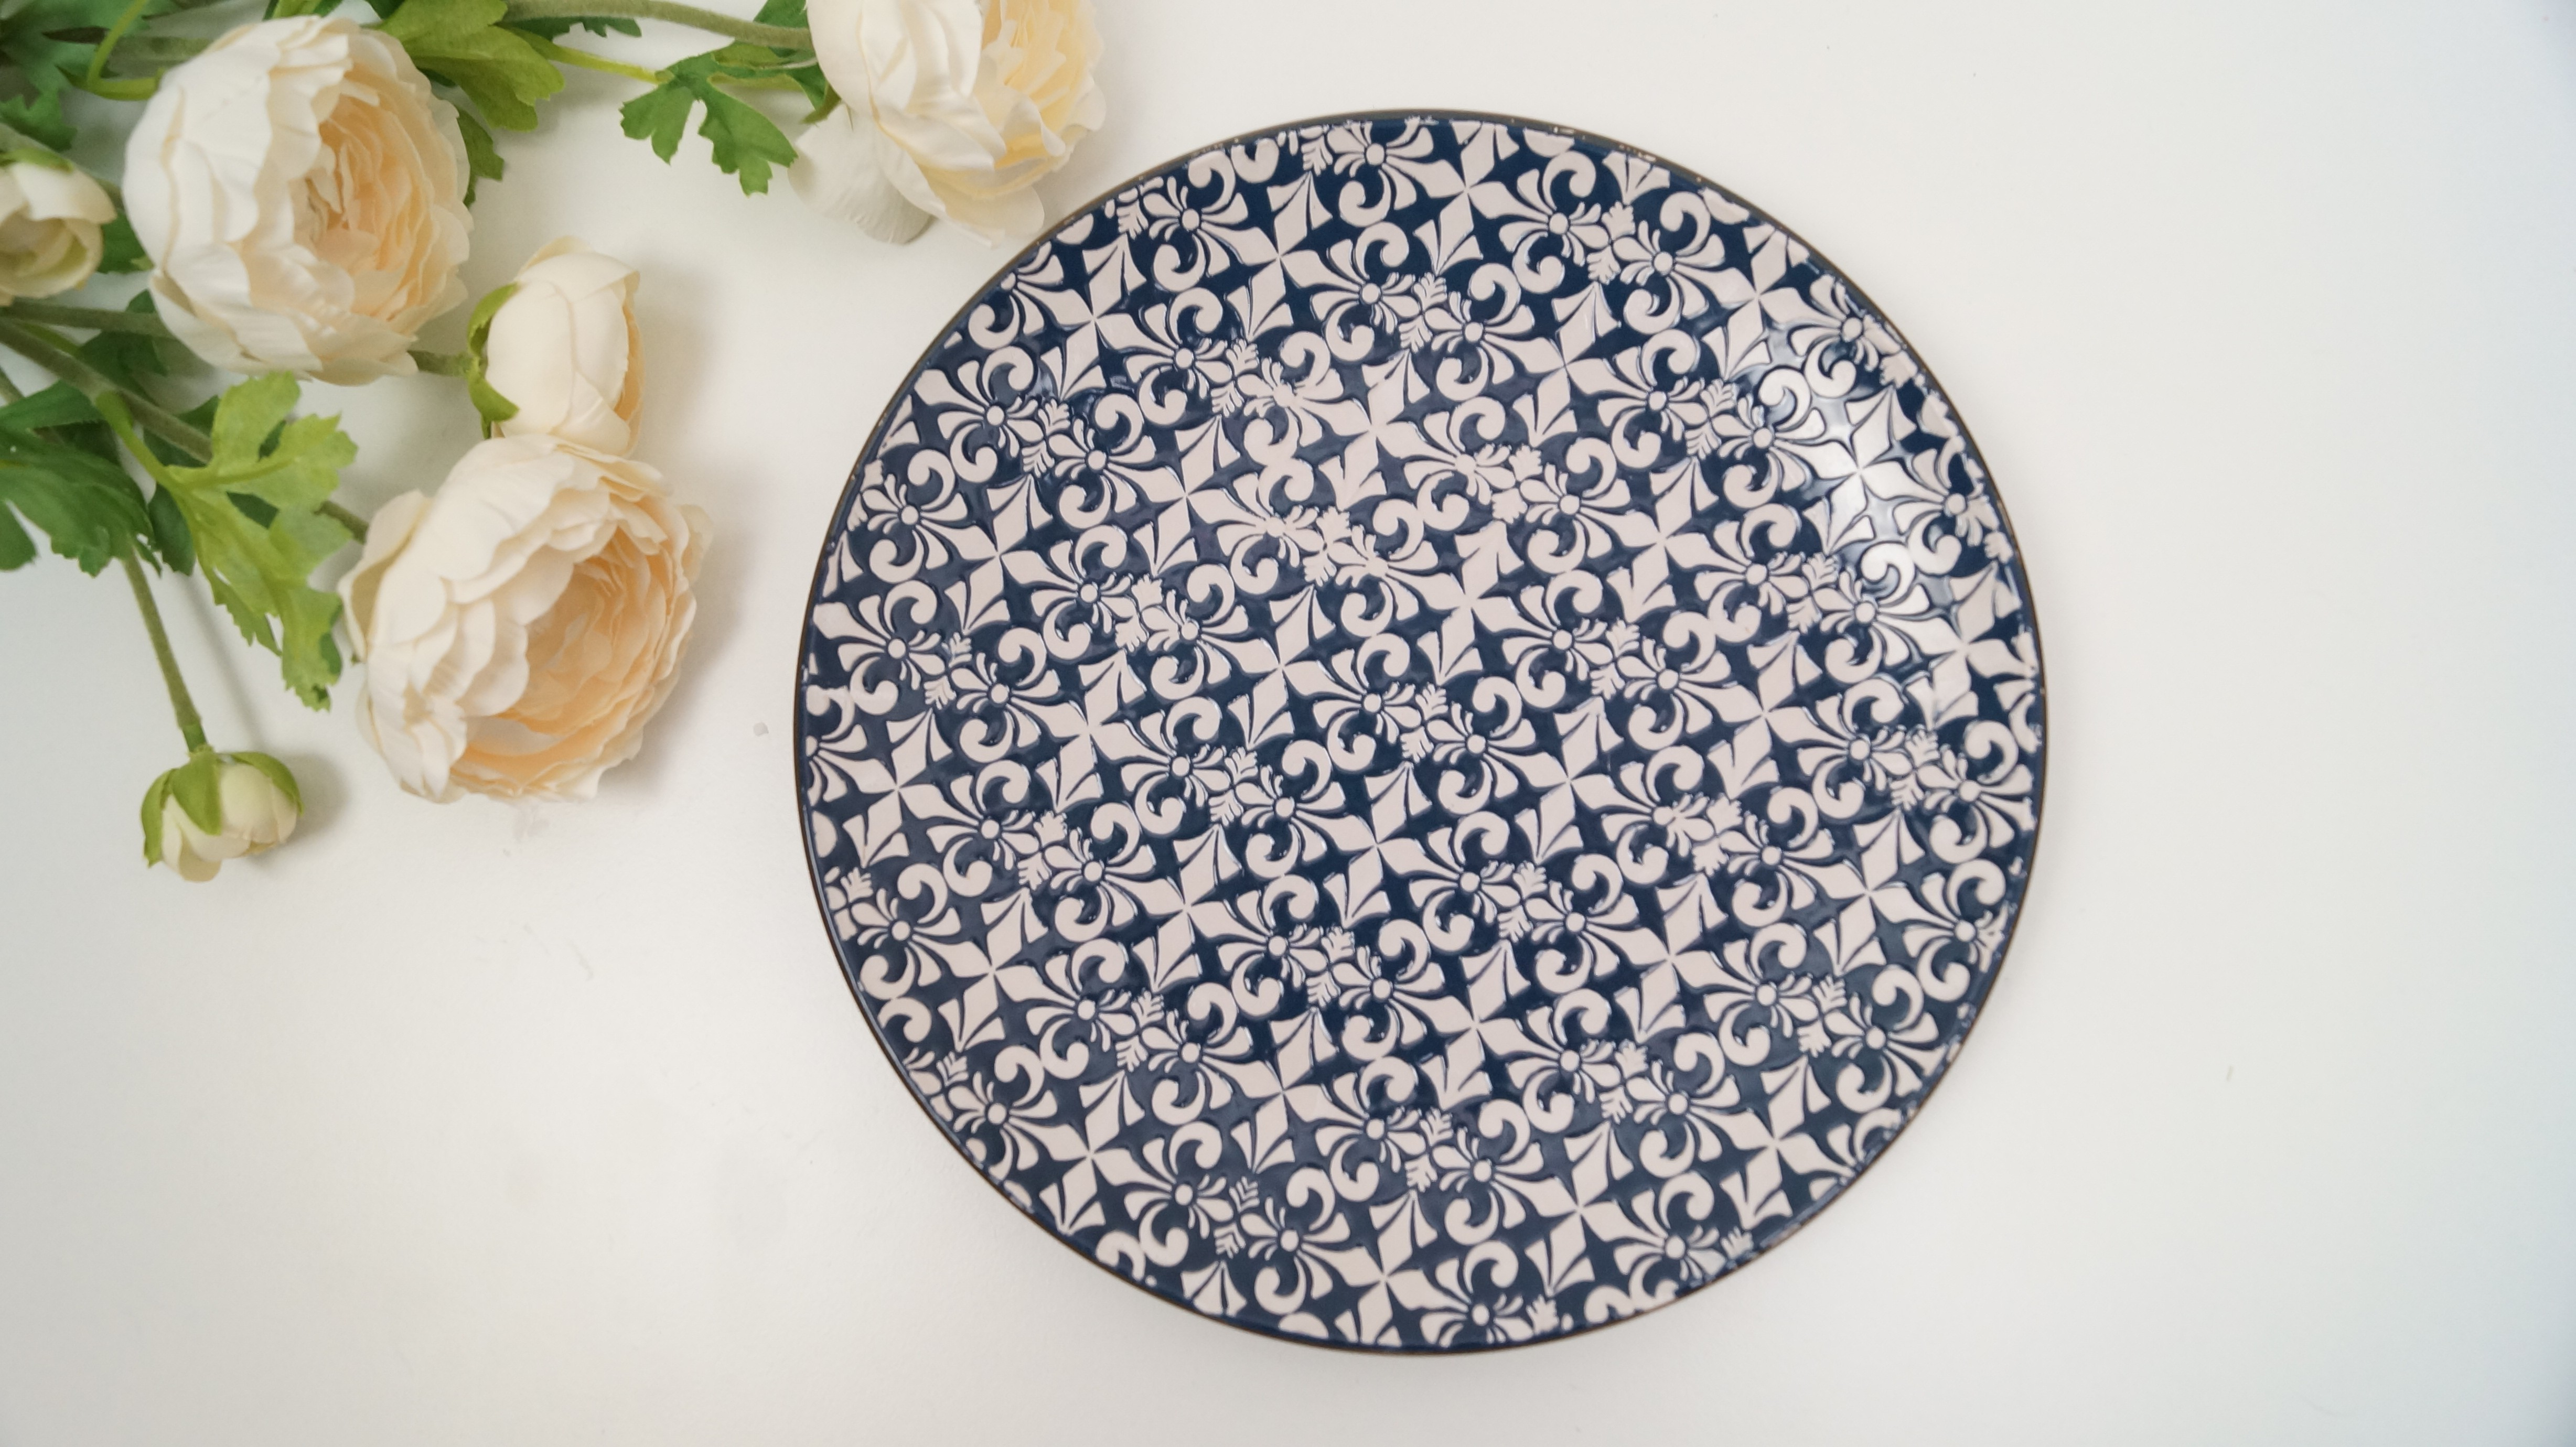 Decorative Dinner Plates Awesome Stylish Mosaic Blue And White Decorative Dinner Plates Set Of 2 Decorating Inspiration